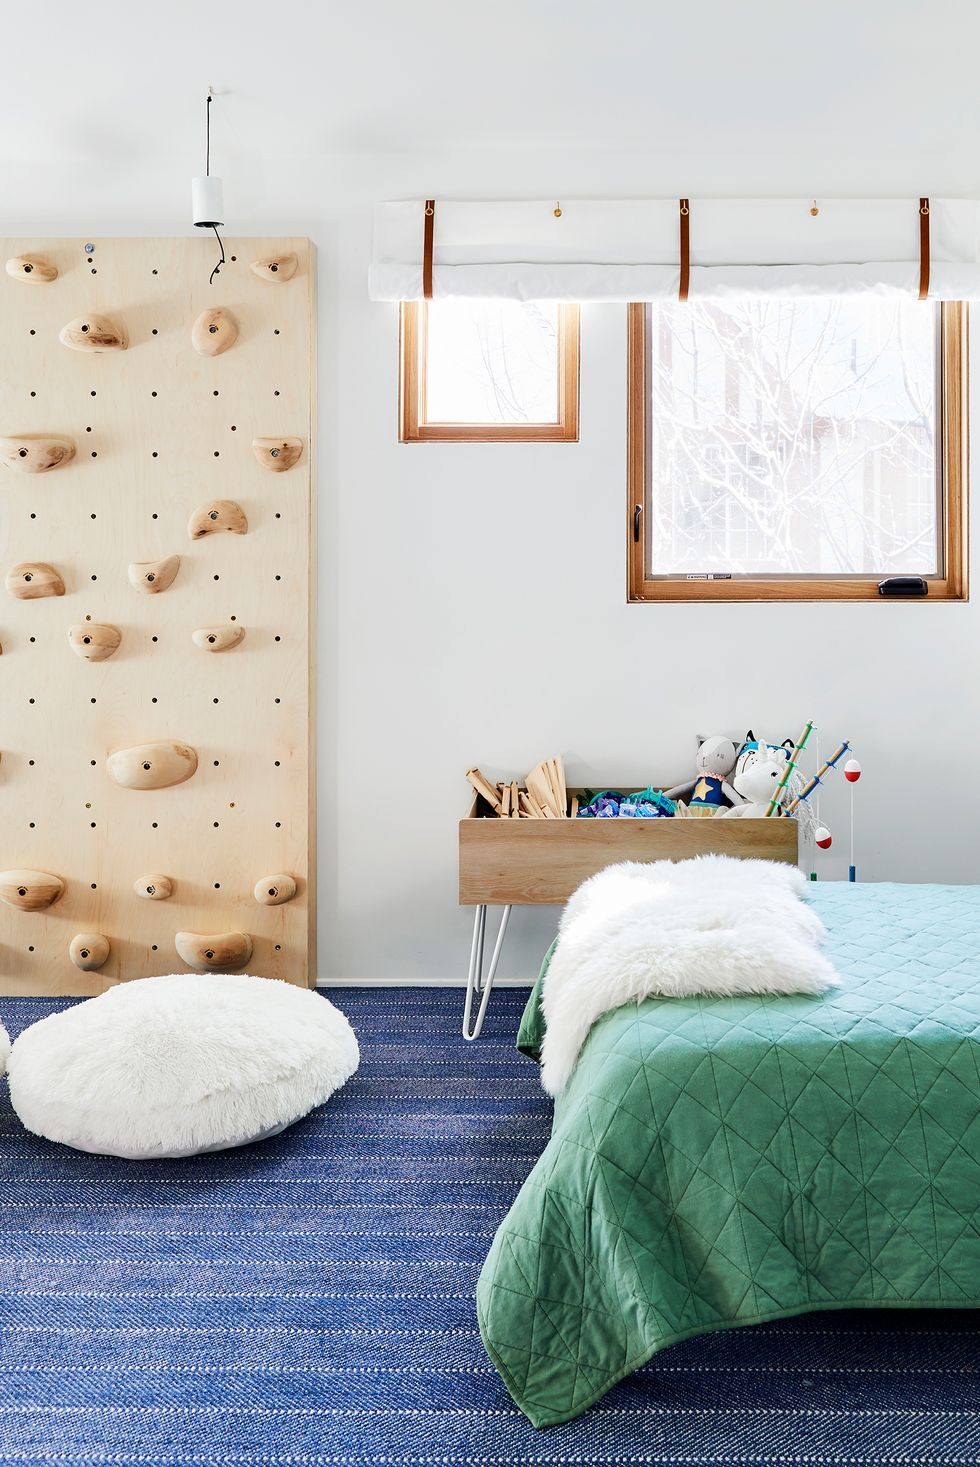 What makes a bedroom masculine? 31 Best Boys Bedroom Ideas In 2021 Boys Room Design